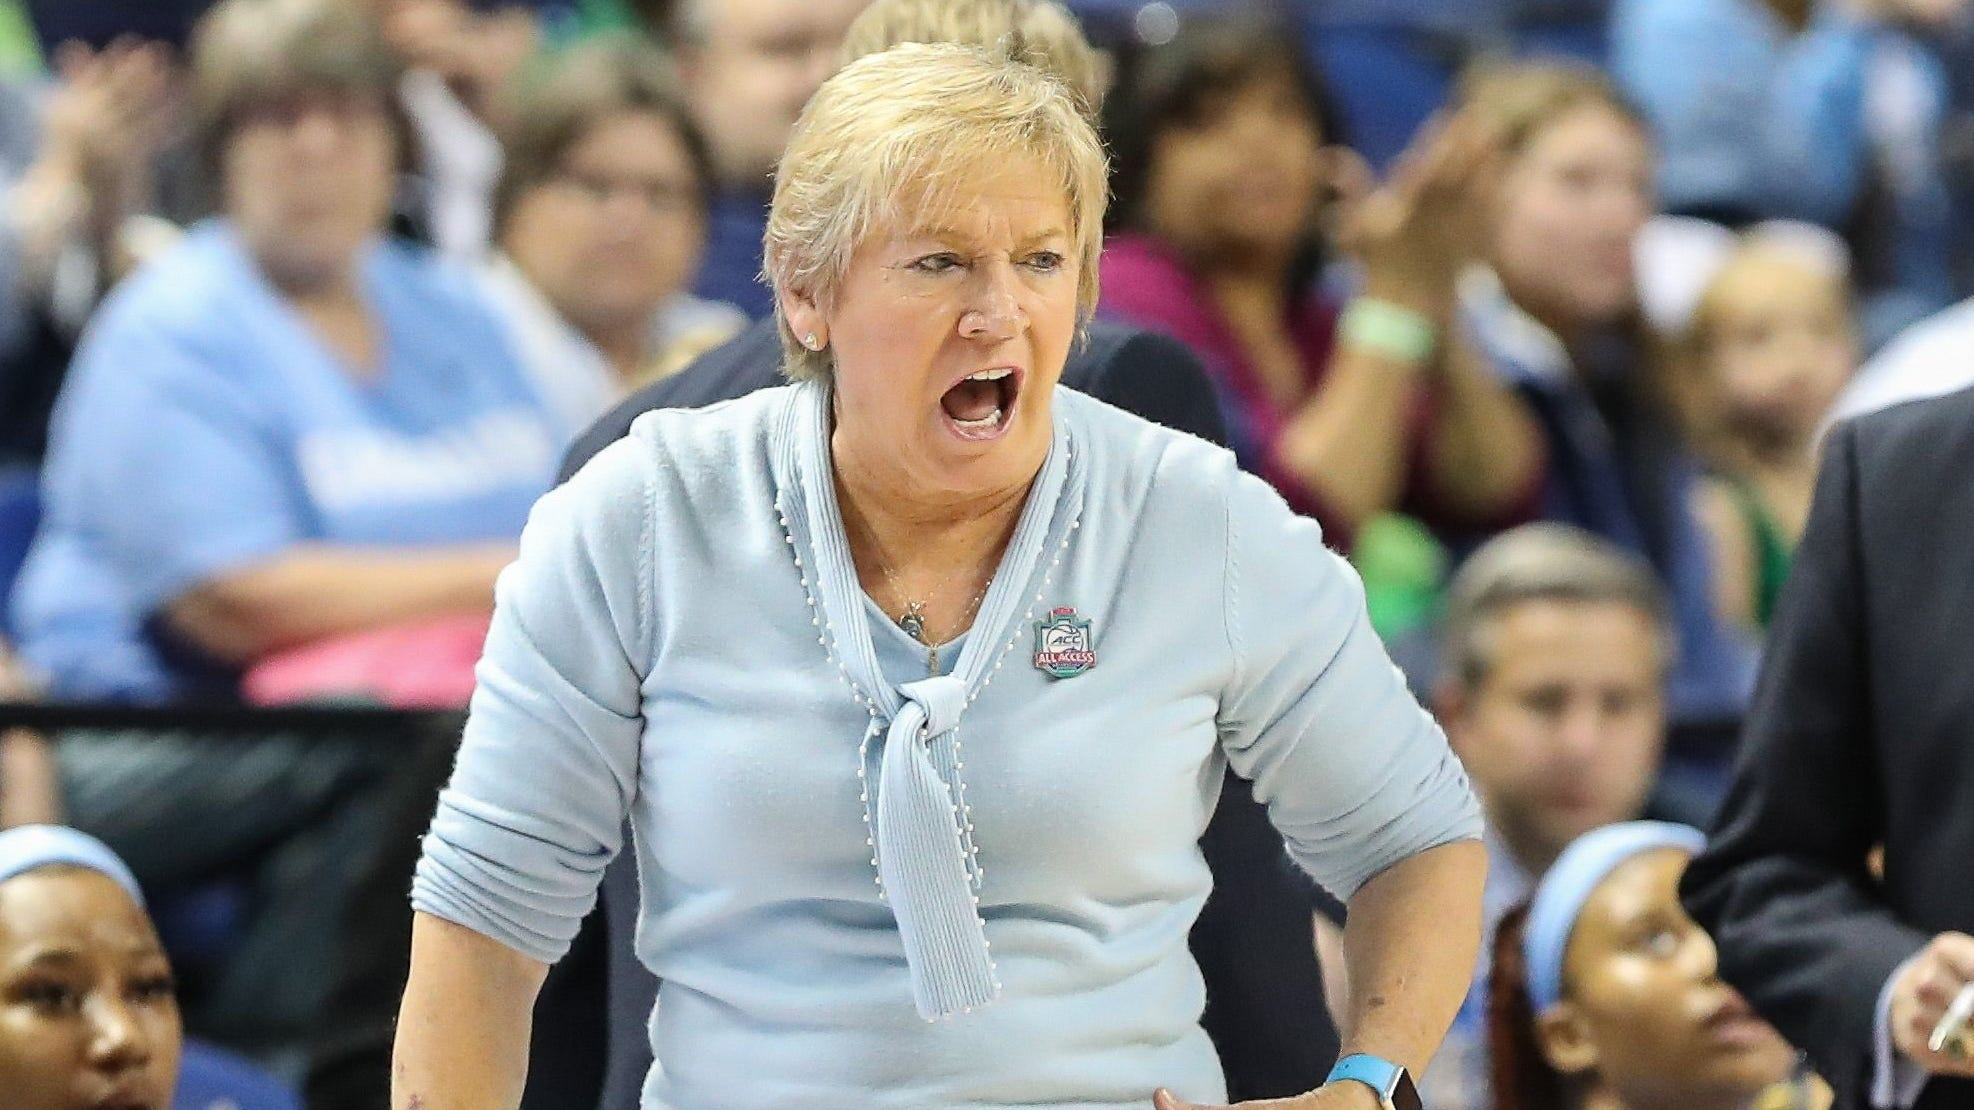 A member of the basketball hall of fame, Sylvia Hatchell has coached at North Carolina since 1986, winning a national championship in 1994.